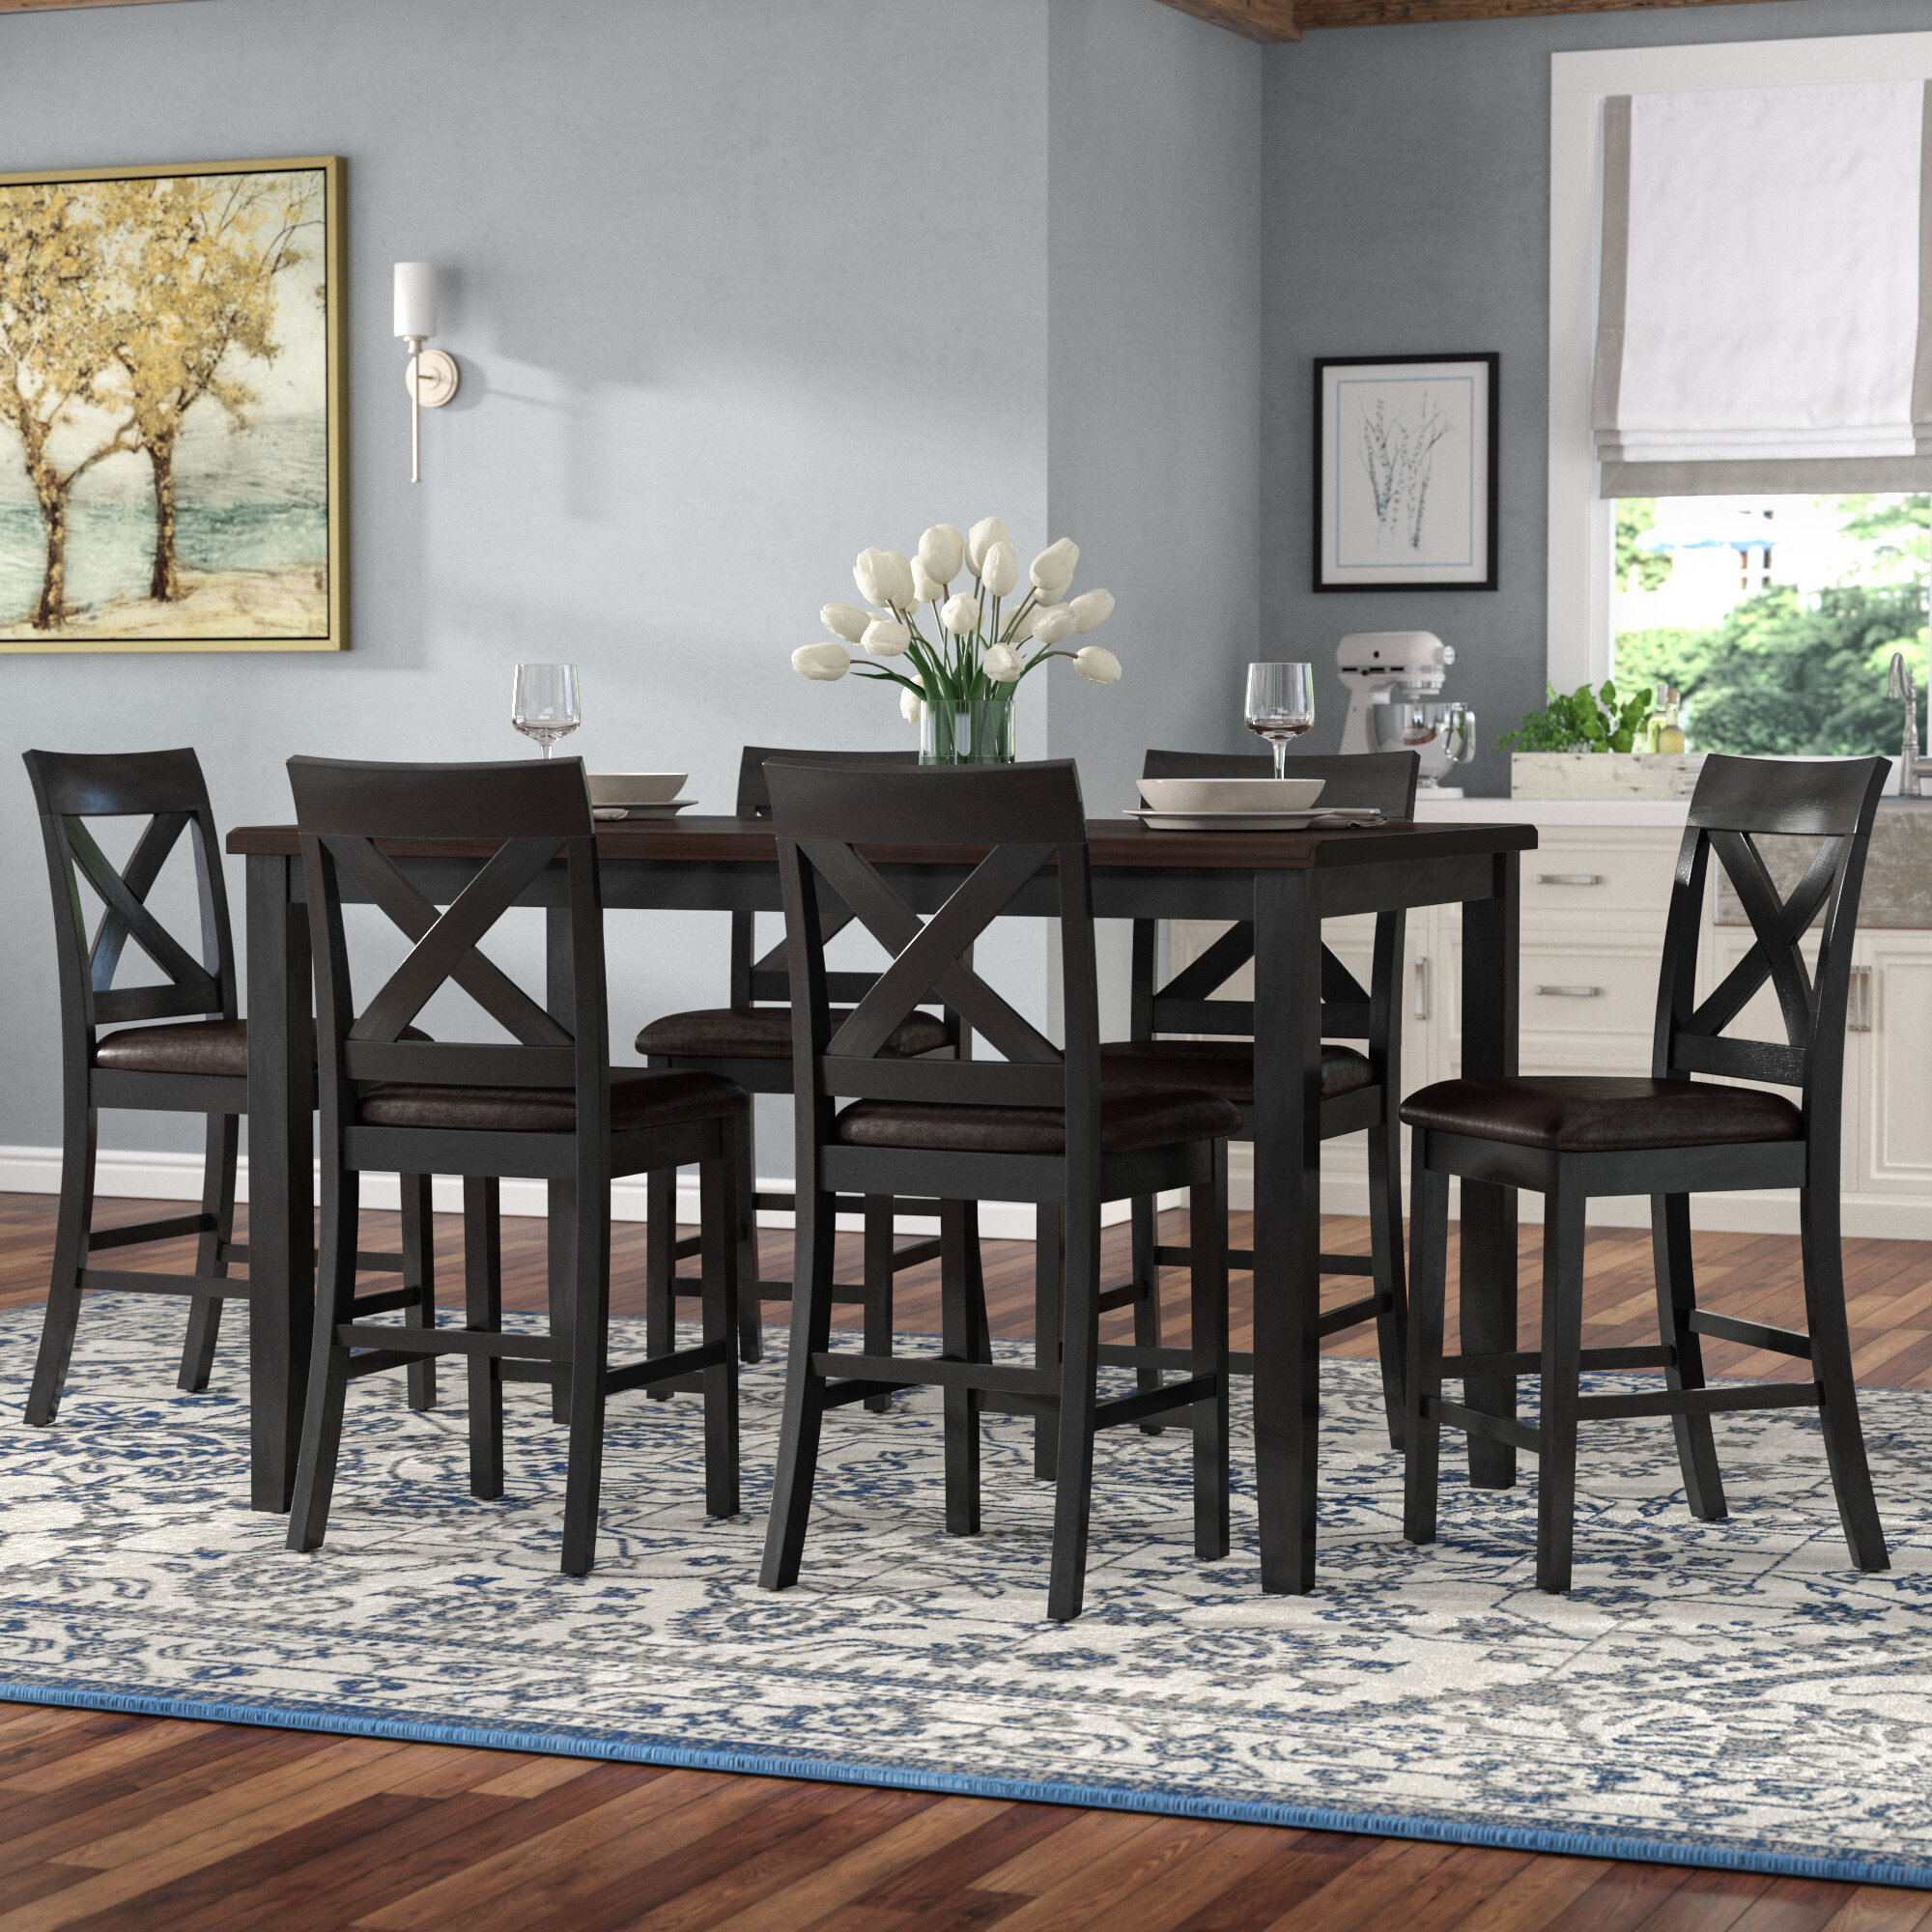 Darby Home Co Nadine 7 Piece Pub Table Set Reviews